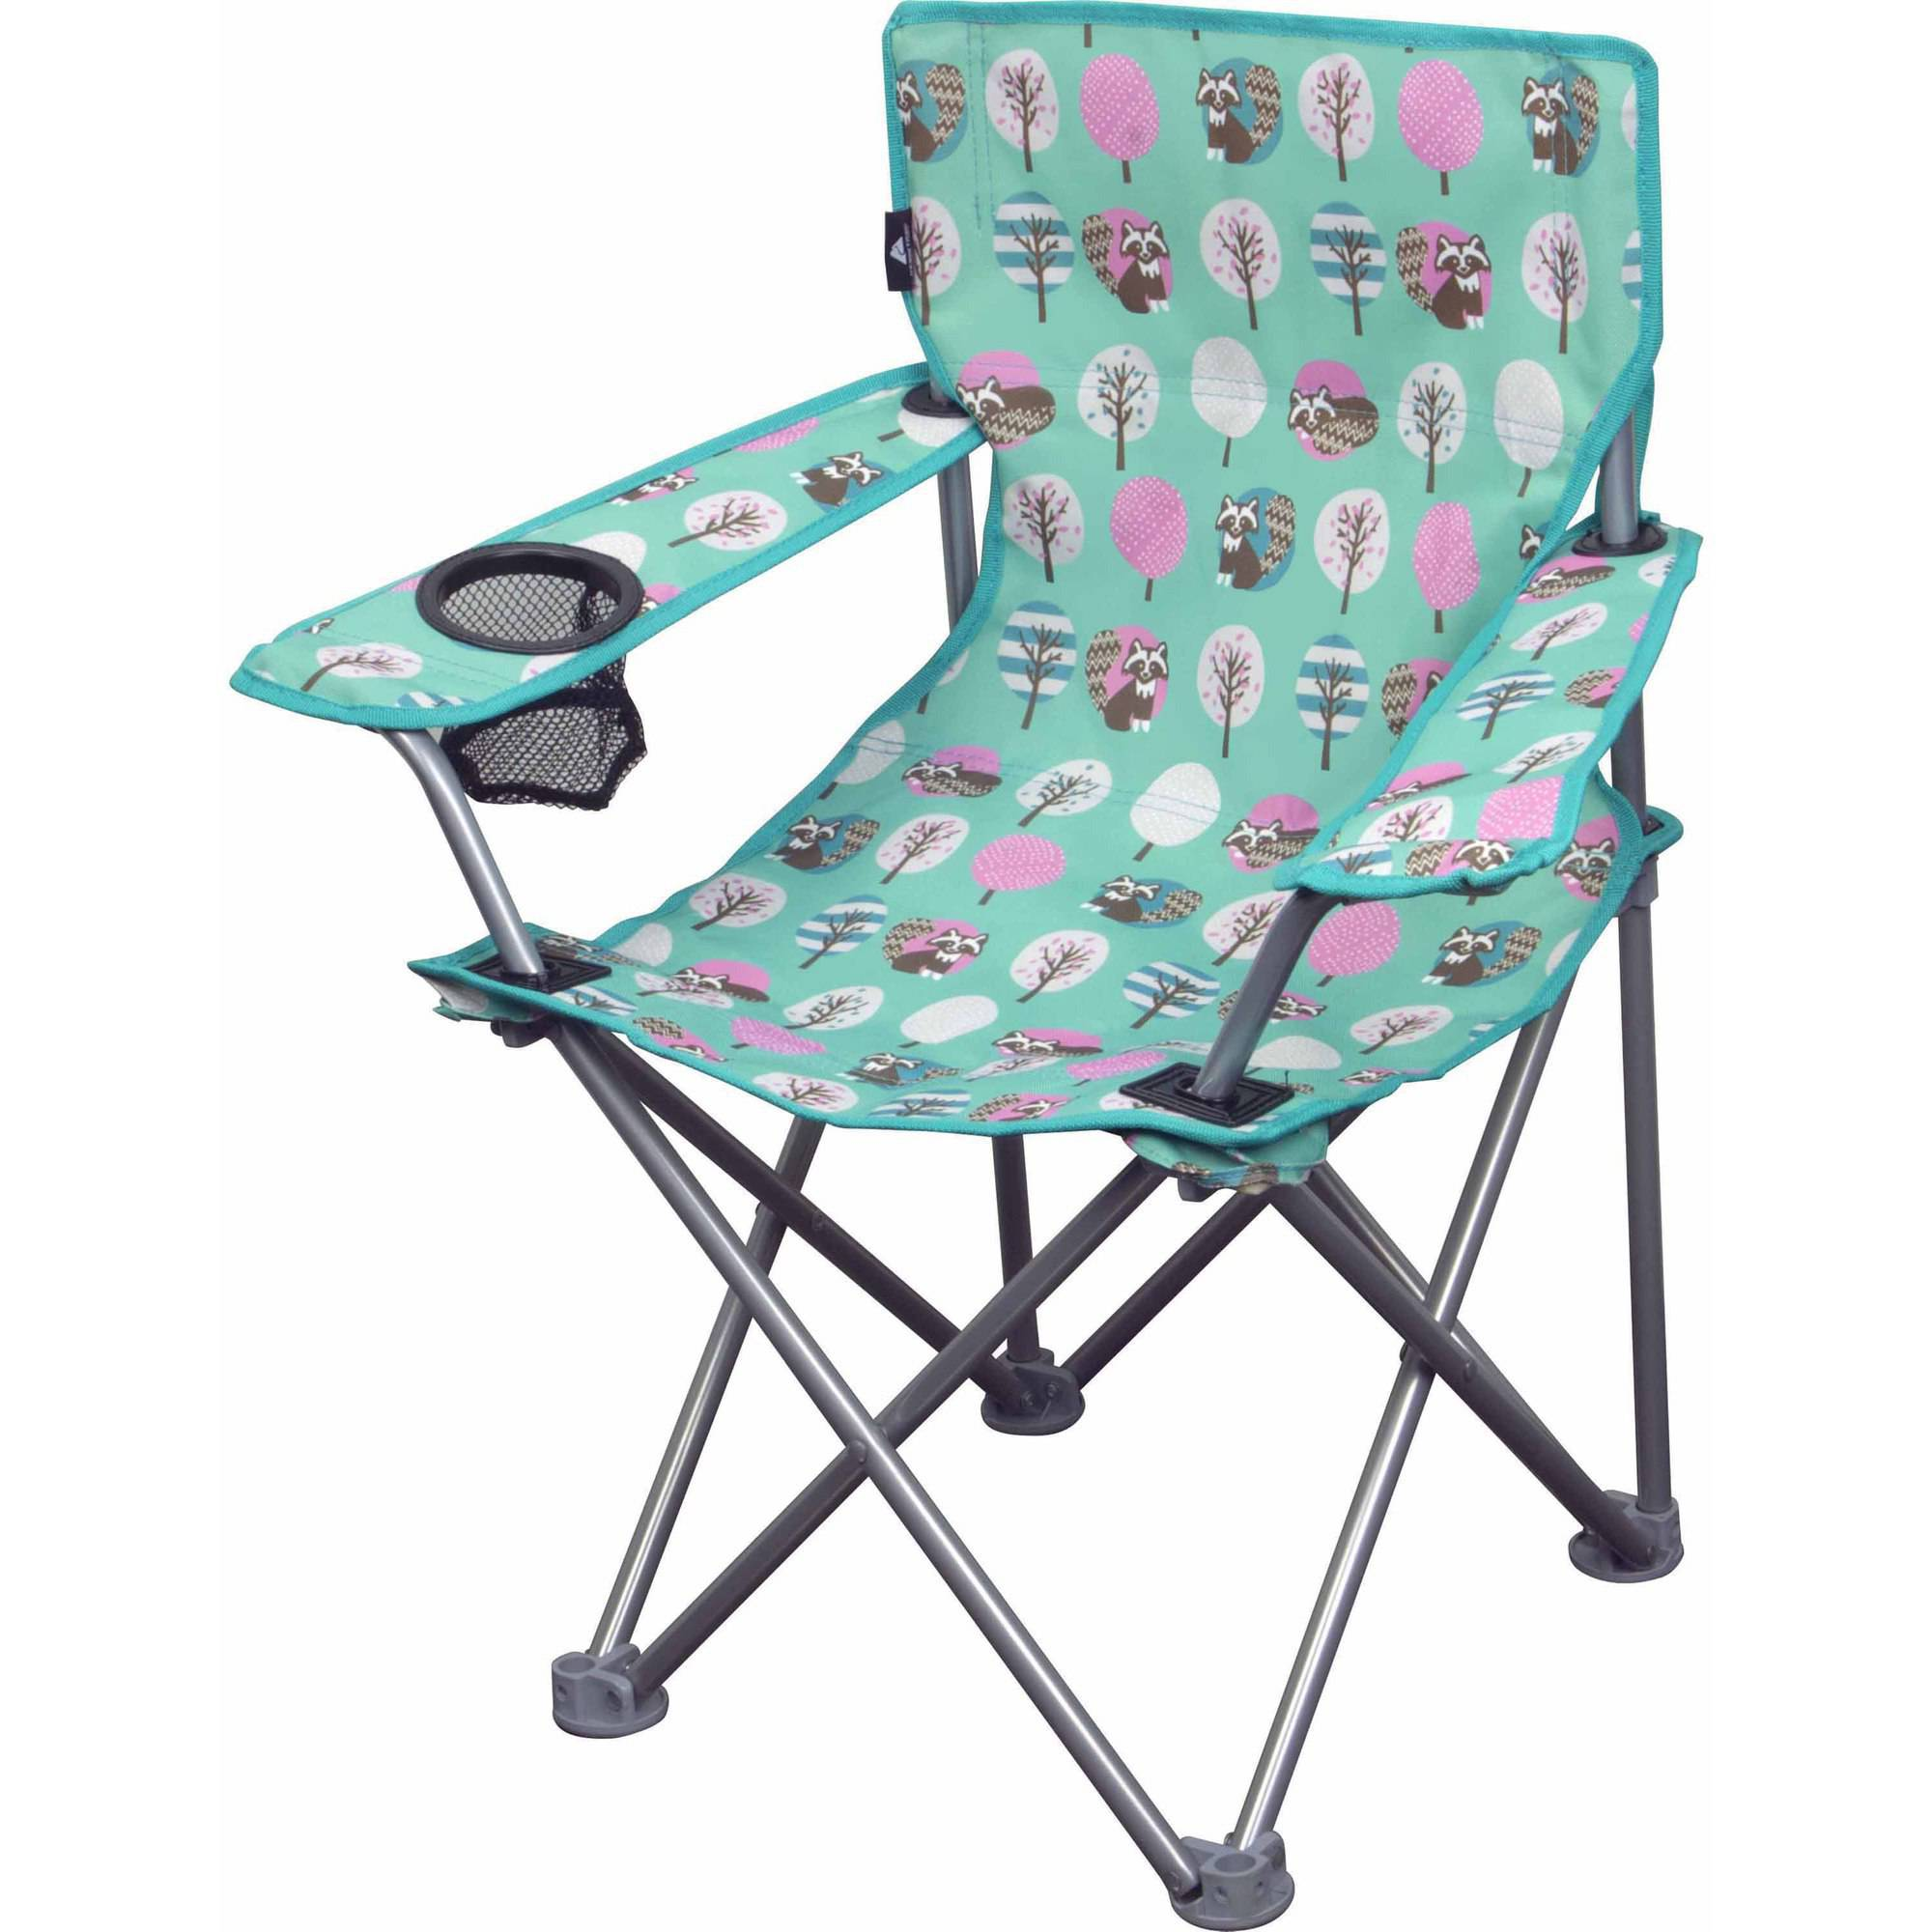 camping chairs at walmart toddler upholstered chair with ottoman ozark trail kids com